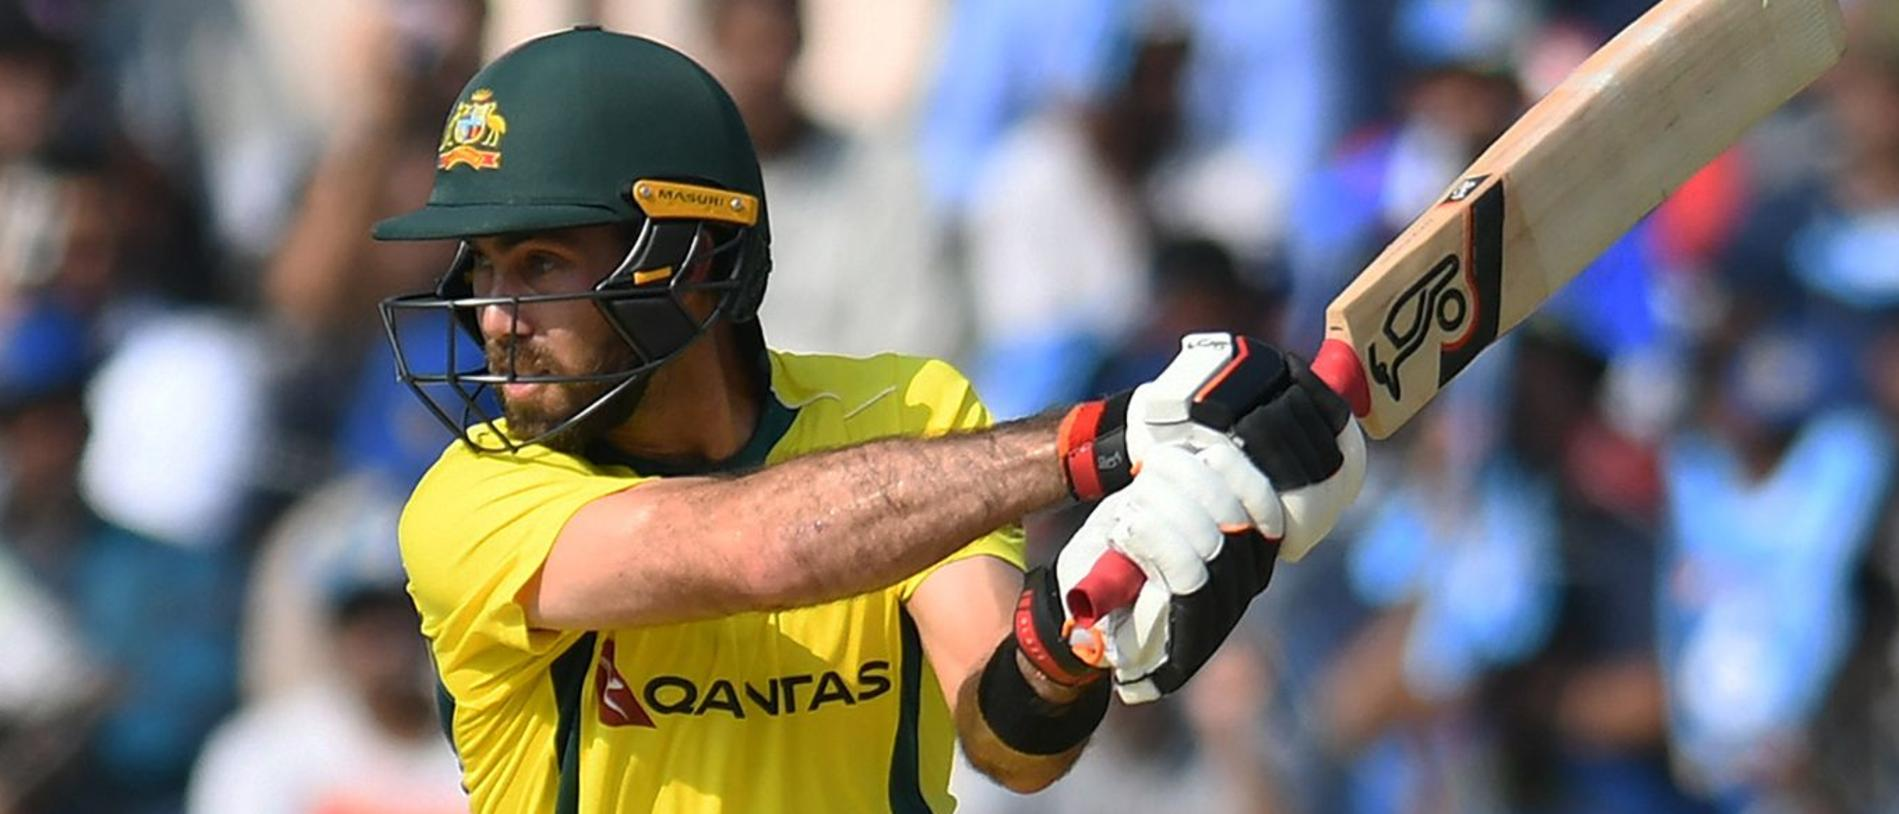 Australian cricketer Glenn Maxwell plays a shot during the first one day international (ODI) cricket match between India and Australia at the Rajiv Gandhi International Cricket Stadium in Hyderabad on March 2, 2019. (Photo by NOAH SEELAM / AFP) / ----IMAGE RESTRICTED TO EDITORIAL USE - STRICTLY NO COMMERCIAL USE----- / GETTYOUT